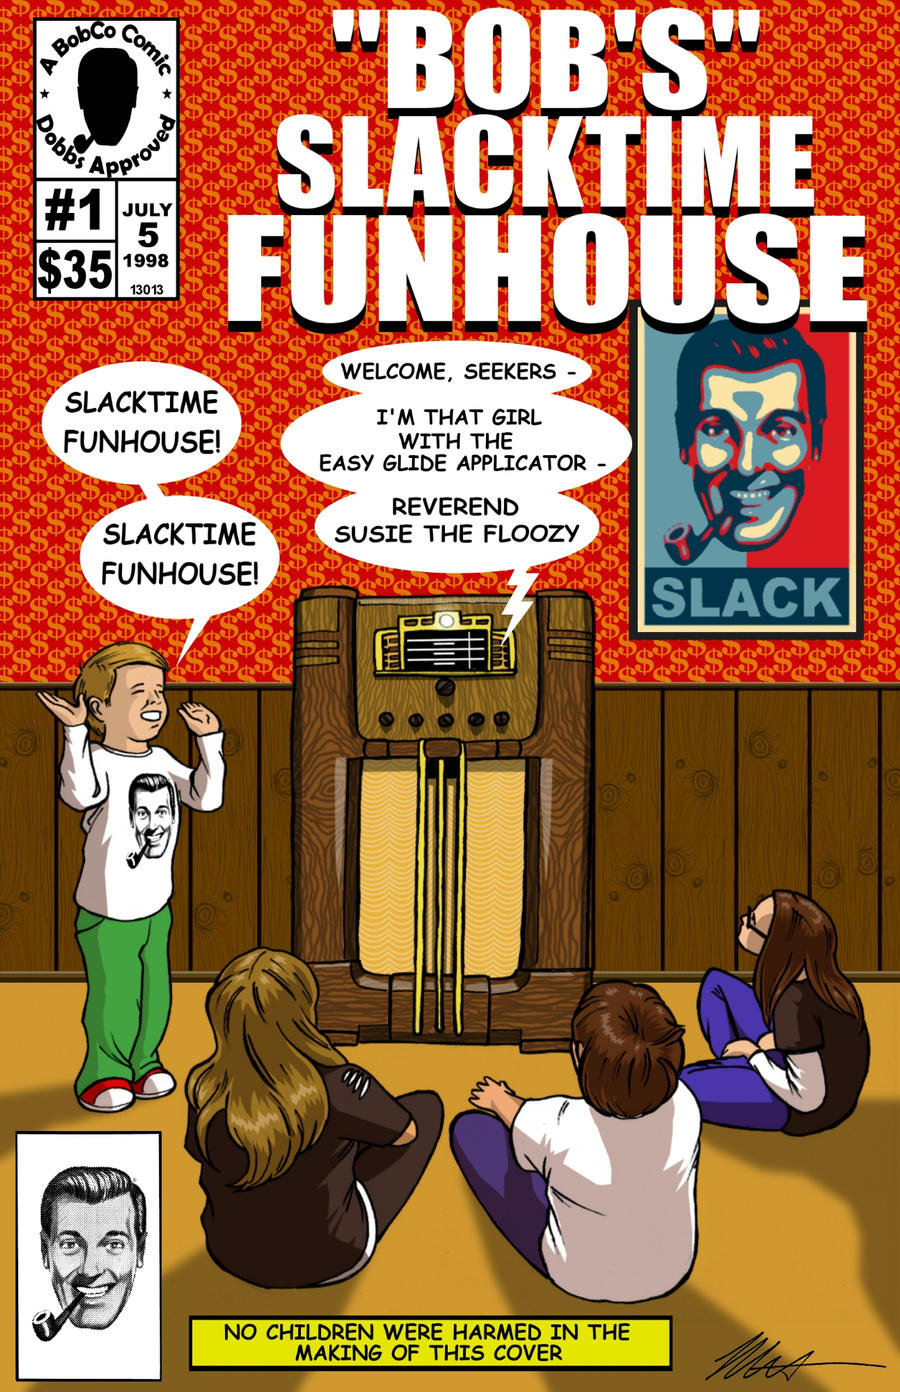 Bob's' Slacktime Funhouse by SicNTwysted on DeviantArt